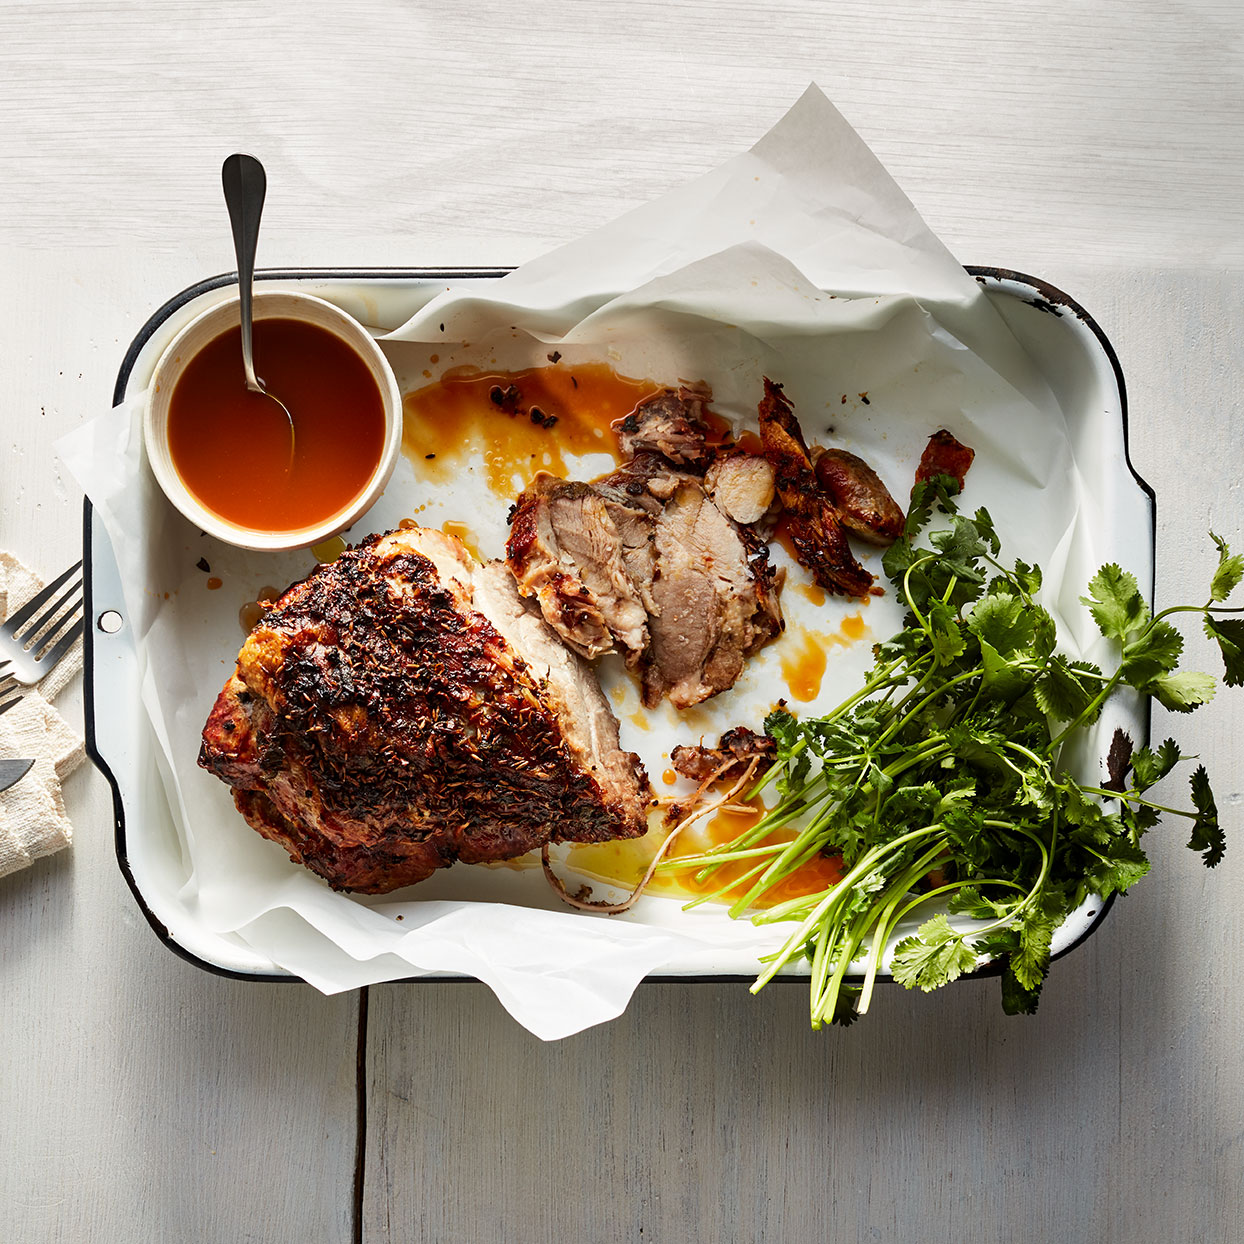 Pork shoulder makes a wonderful roast because it has enough fat to keep it moist and tender during low and slow cooking. The citrus sauce has a smoky, agave sweetness from the tequila and produces a bright counterpoint to the unctuous meat. Serve any extra sauce for dipping.